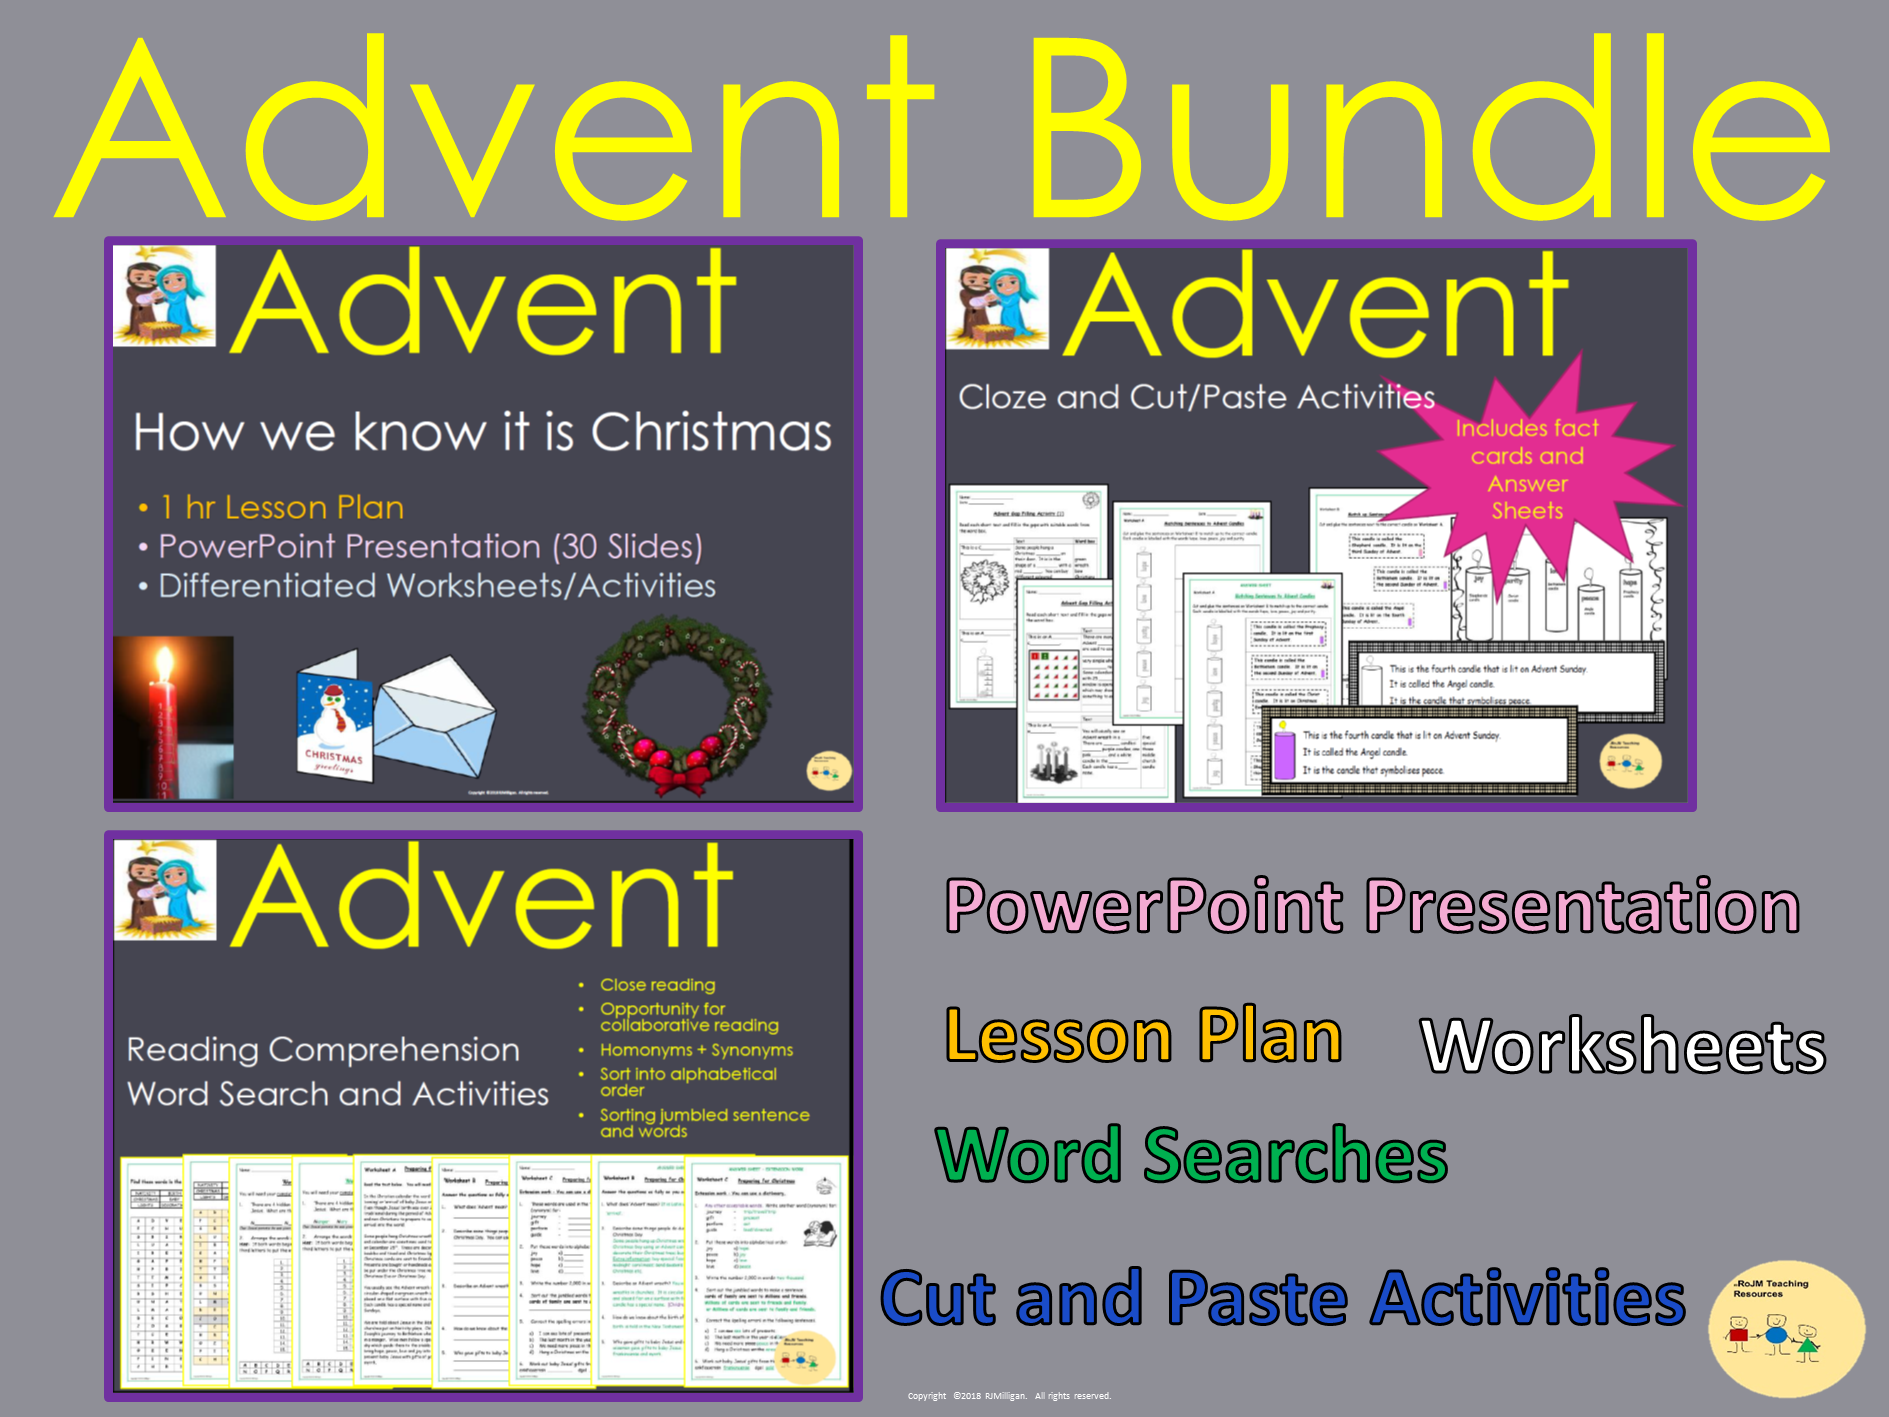 Advent Bundle - Presentation Lesson Plan Worksheets Activities Word Searches Information Text Reading Comprehension